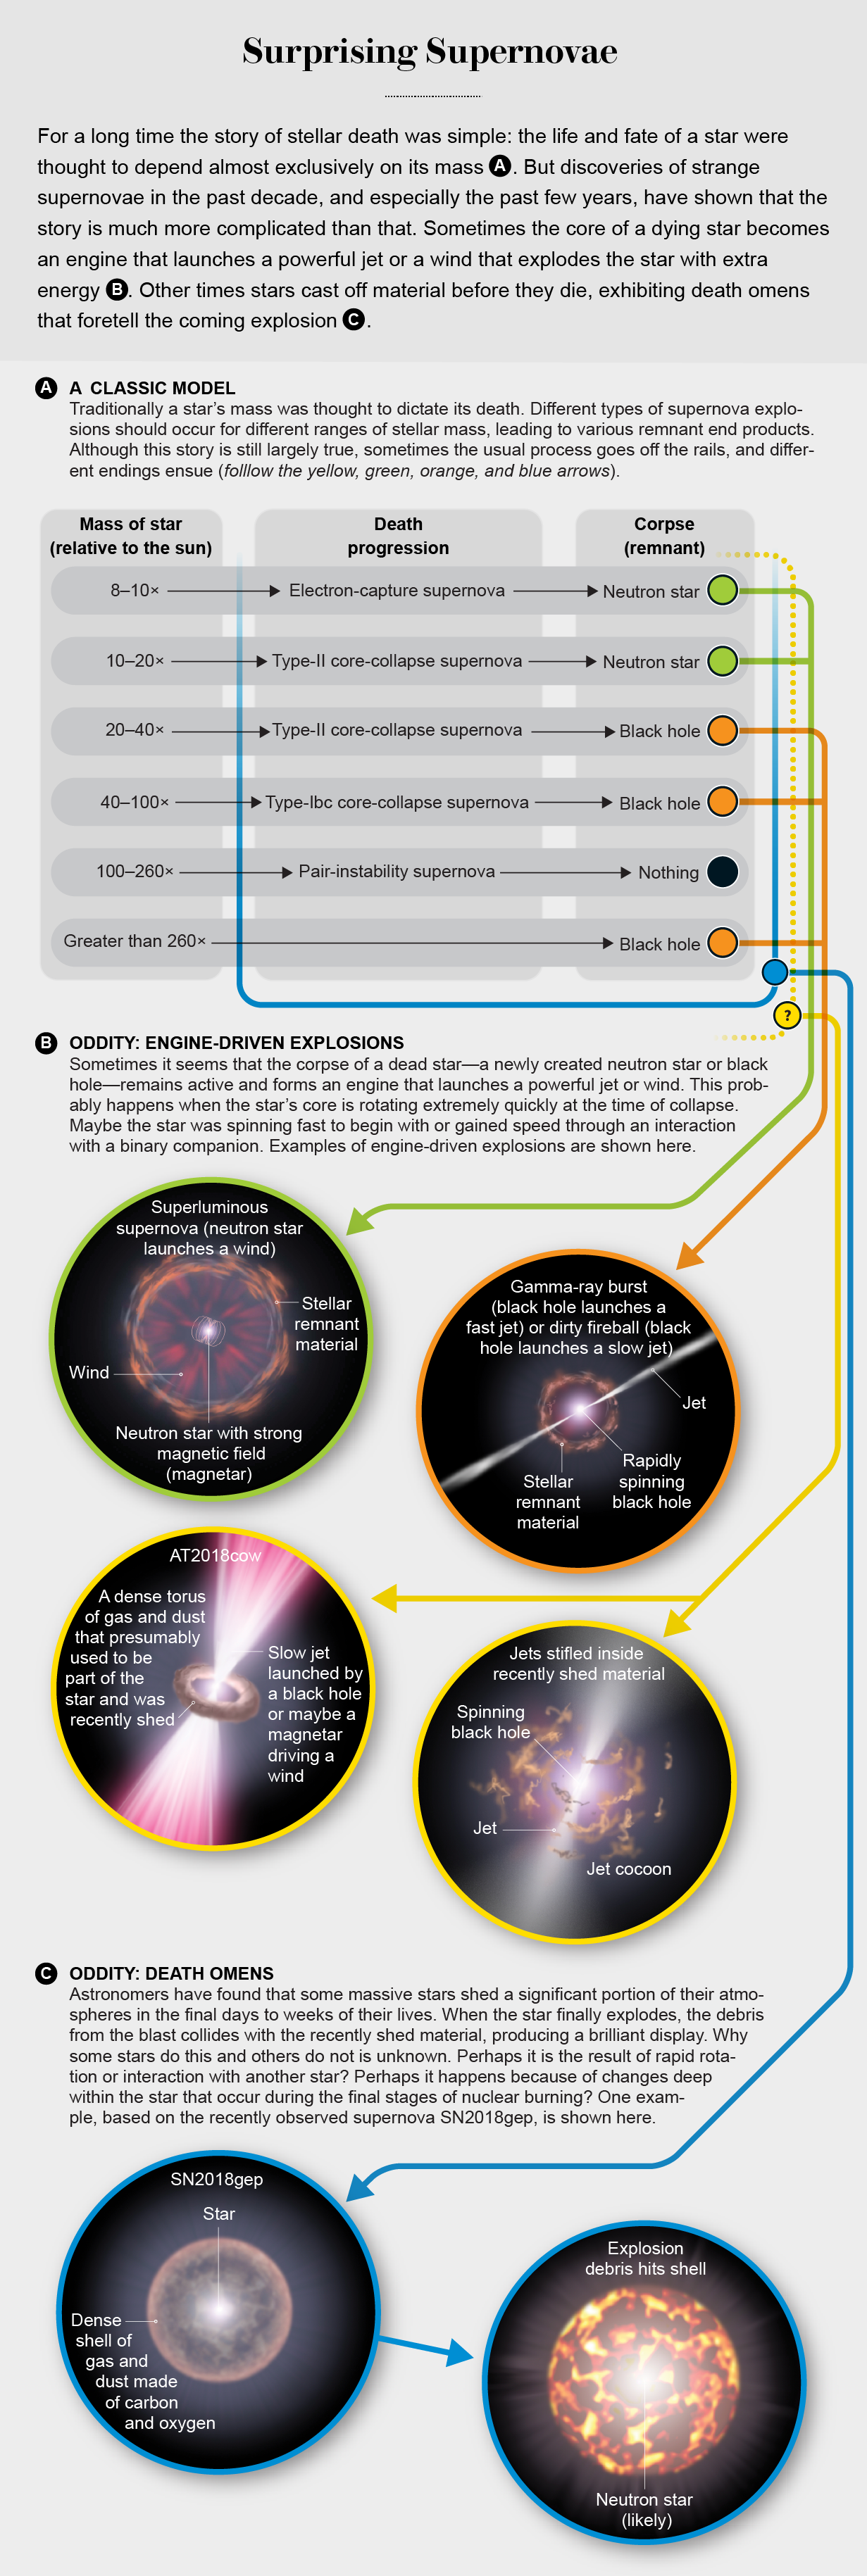 Comparison of the classic model of supernovae with anomalies such as SN2018gep and AT2018cow